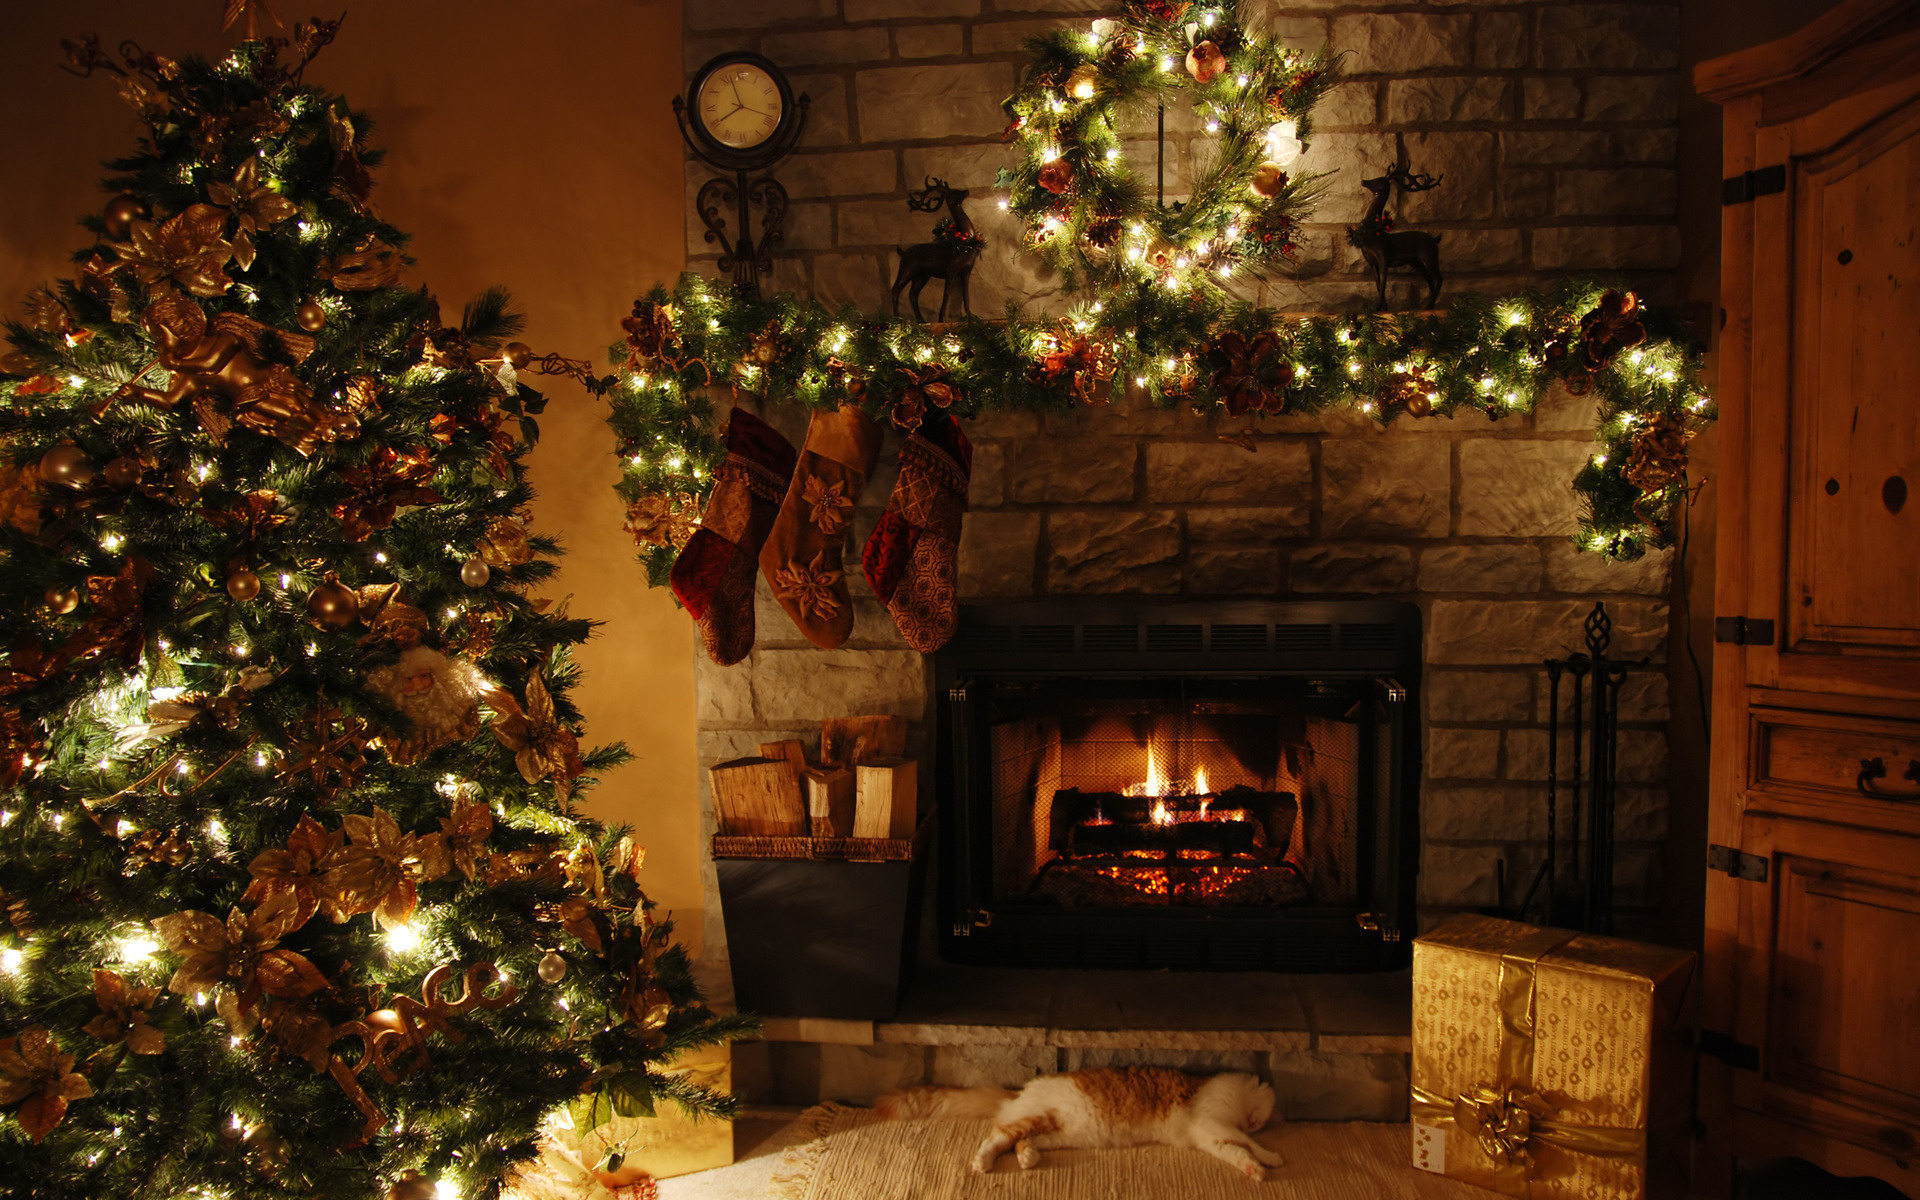 Gallery For gt Animated Christmas Fireplace Wallpaper 1920x1200